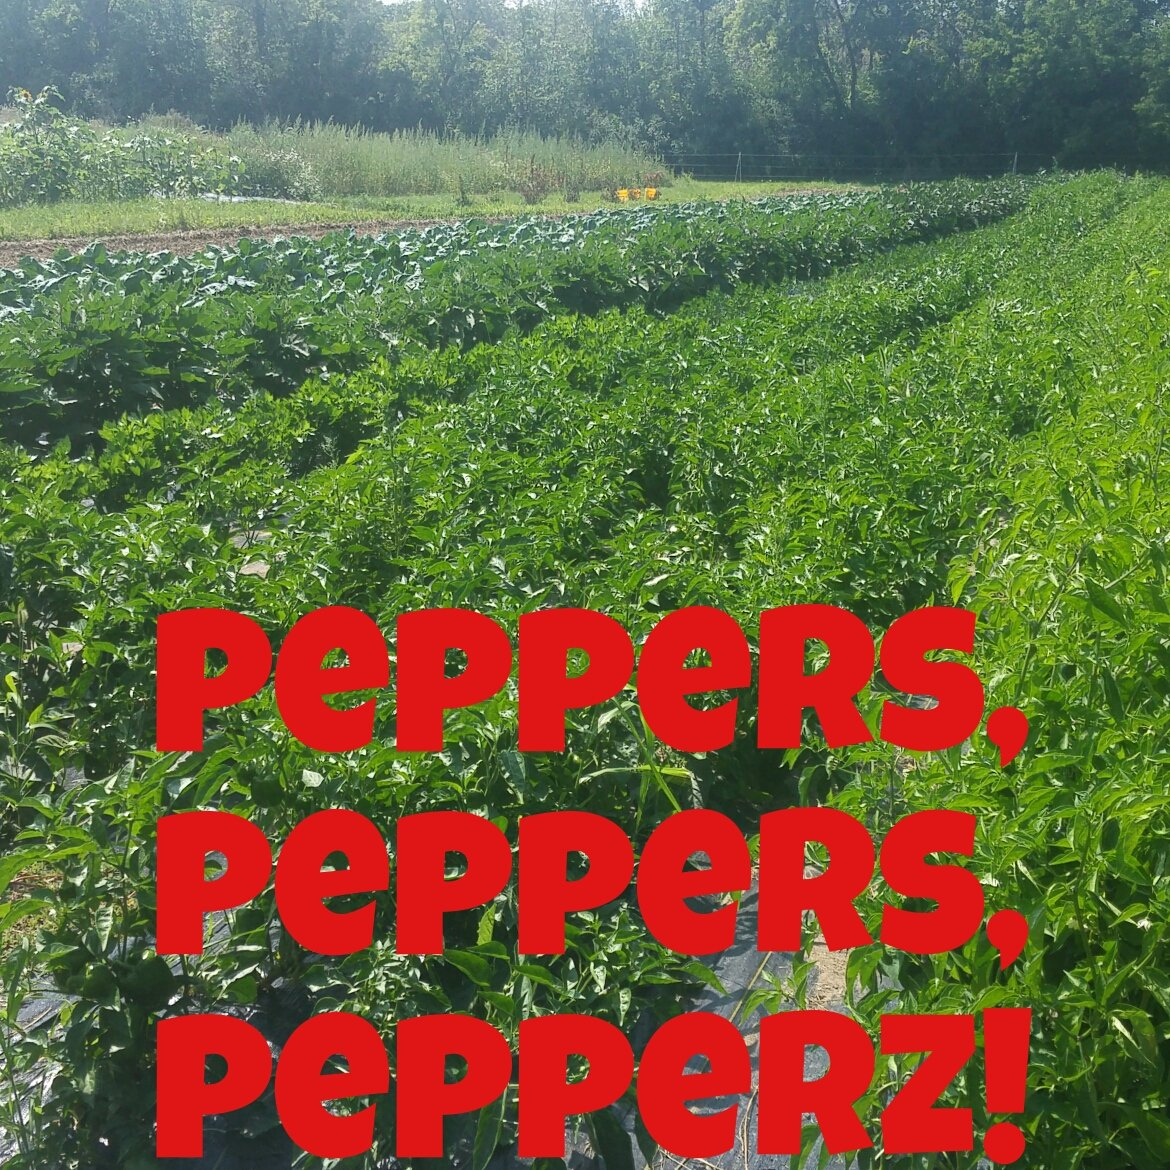 Our pepper plants are going CRAZY! In a good way.